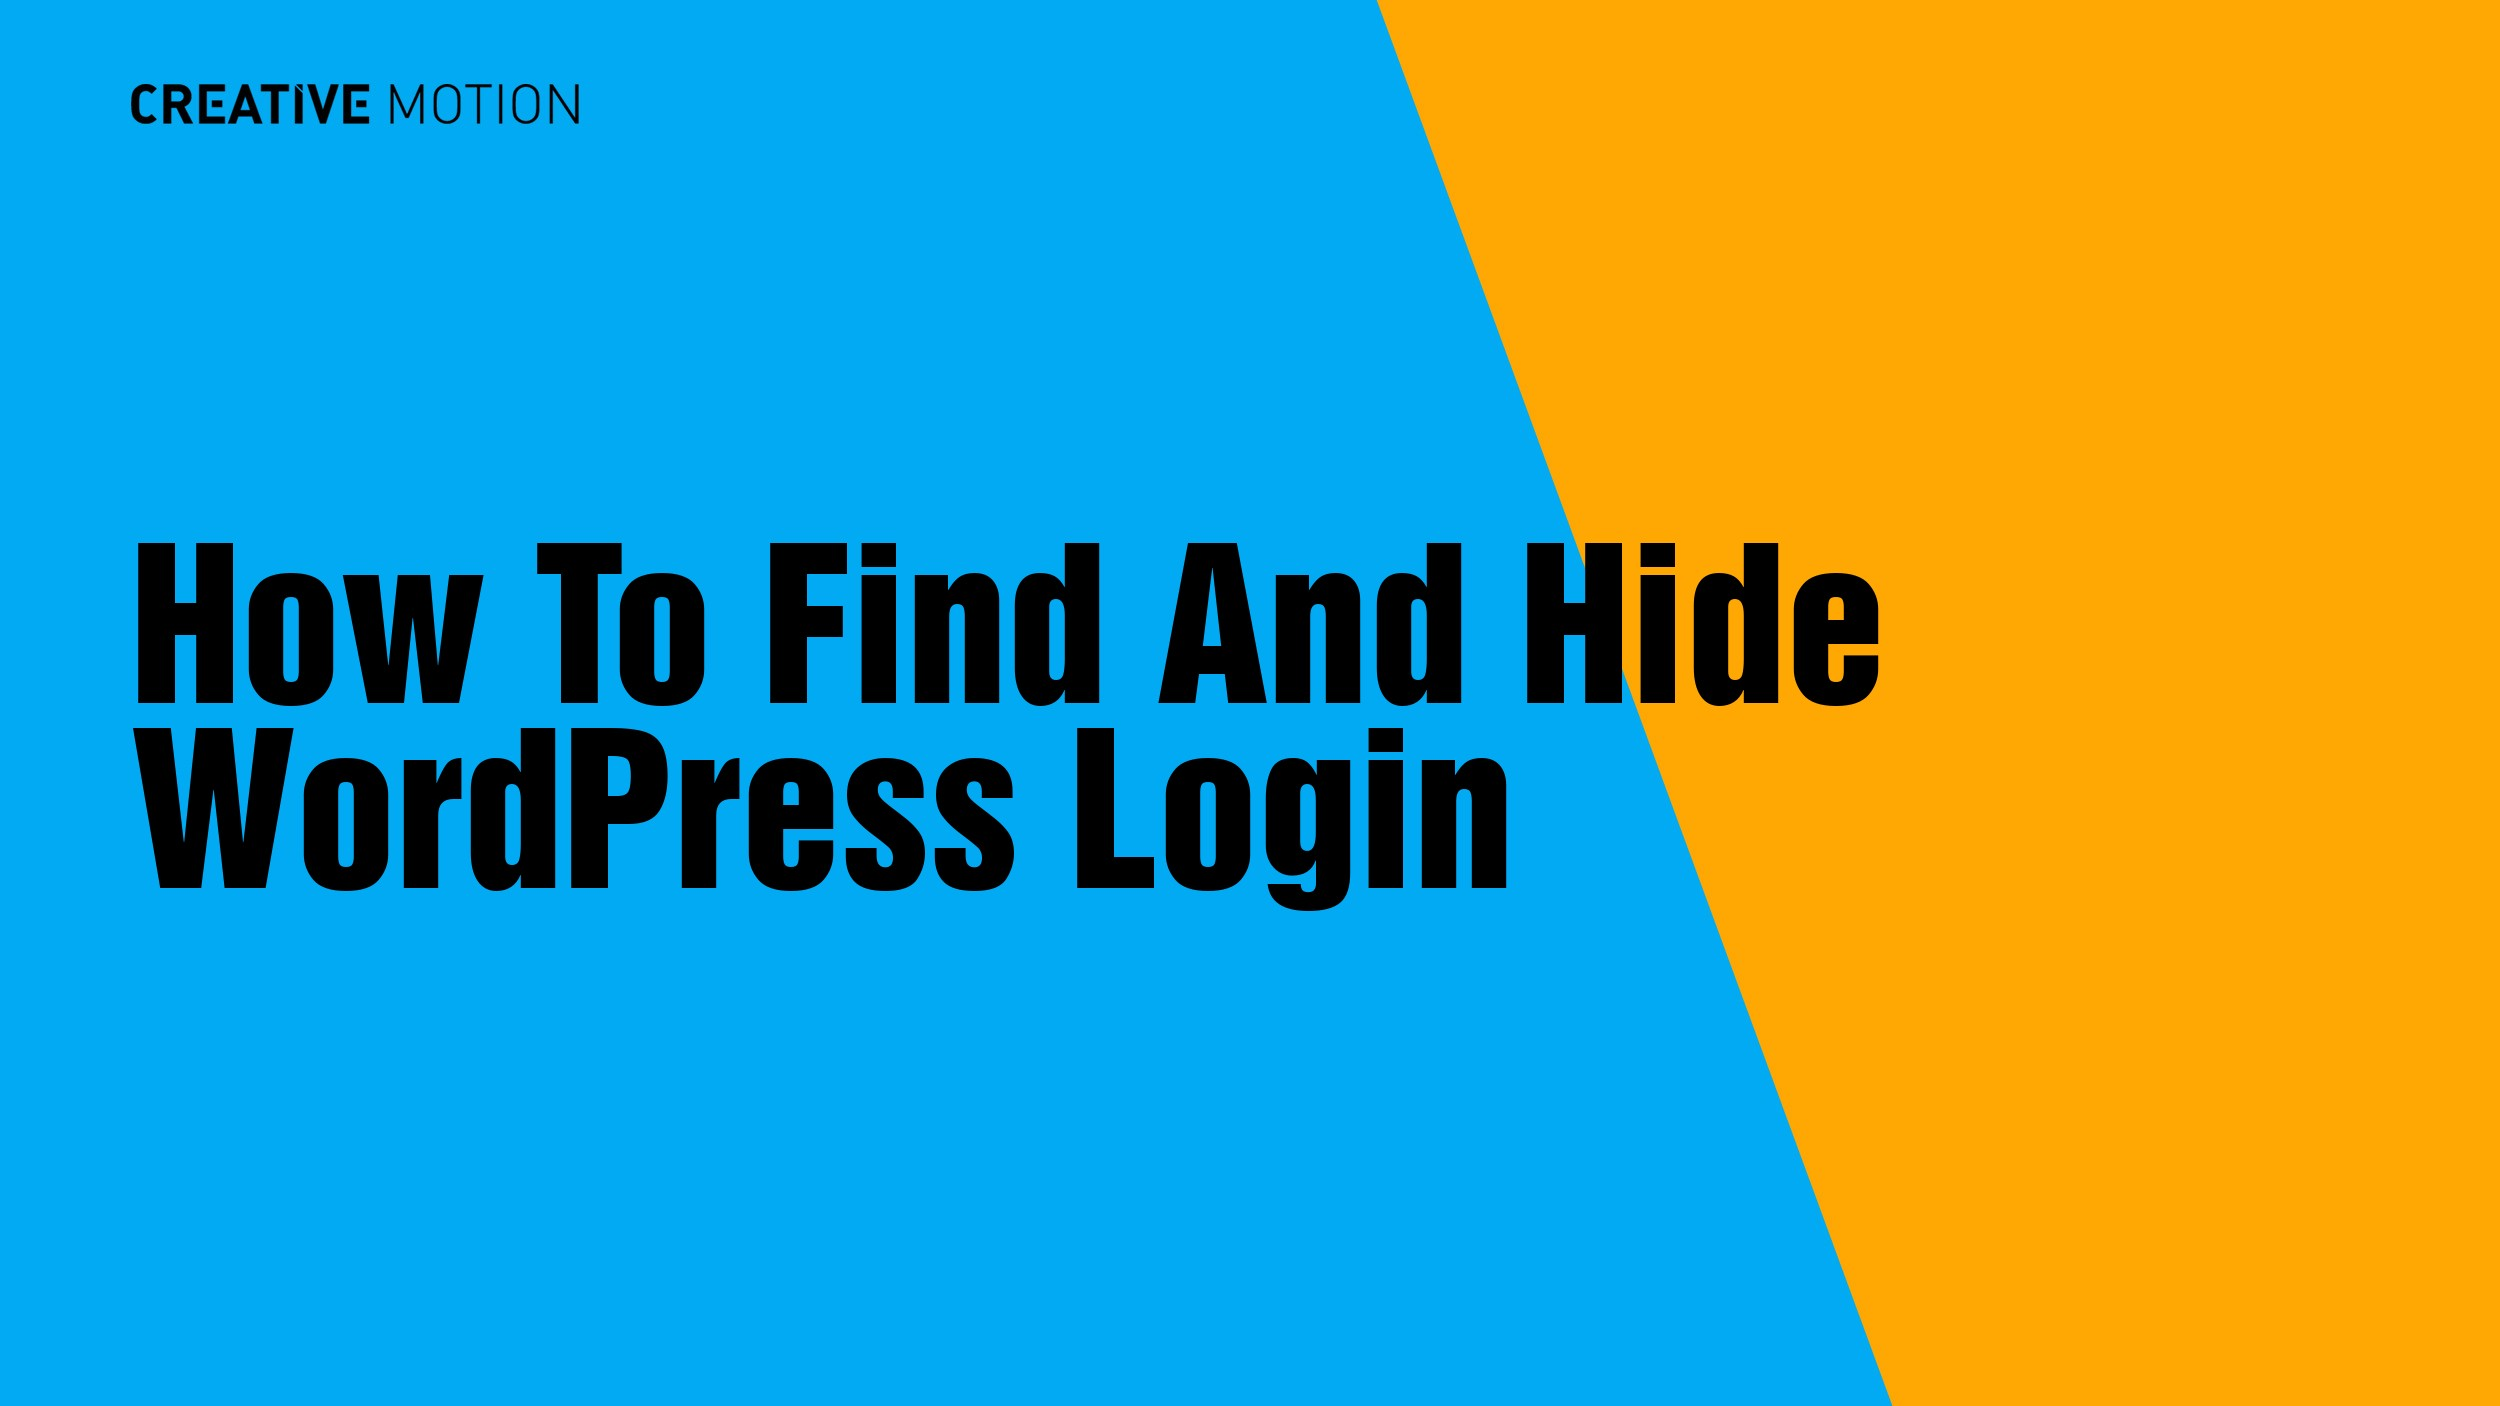 How To Find And Hide WordPress Login